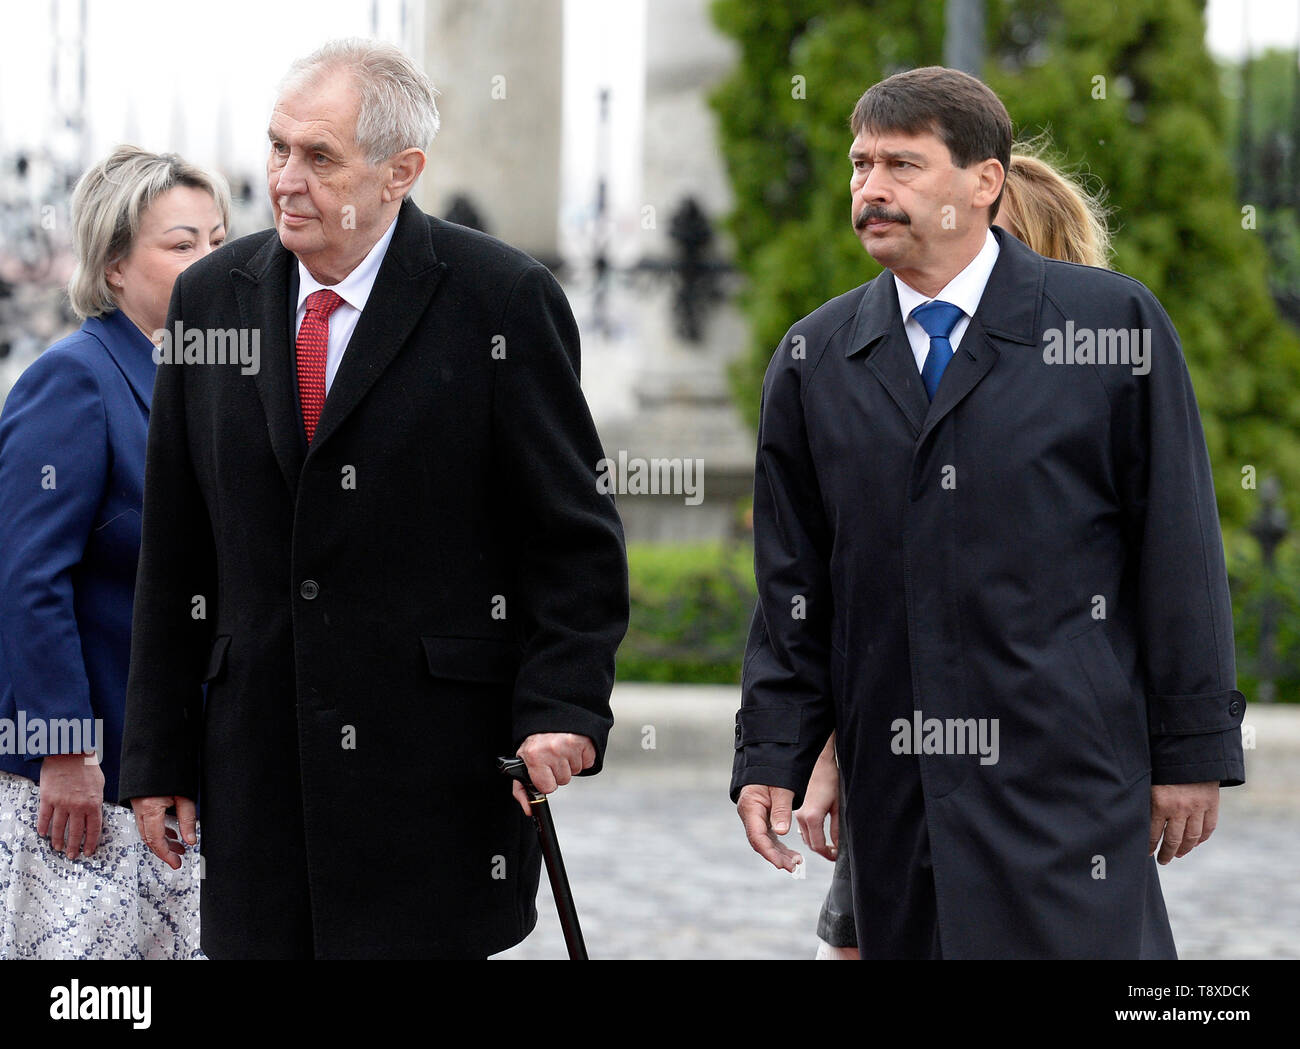 Budapest, Hungary. 15th May, 2019. Czech President Milos Zeman (2nd from left) and his wife Ivana Zemanova (left) meet with Hungarian President Janos Ader (right) and his wife Anita Herczegh (behind him) on May 15, 2019, in Budapest, Hungary. Credit: Katerina Sulova/CTK Photo/Alamy Live News Stock Photo